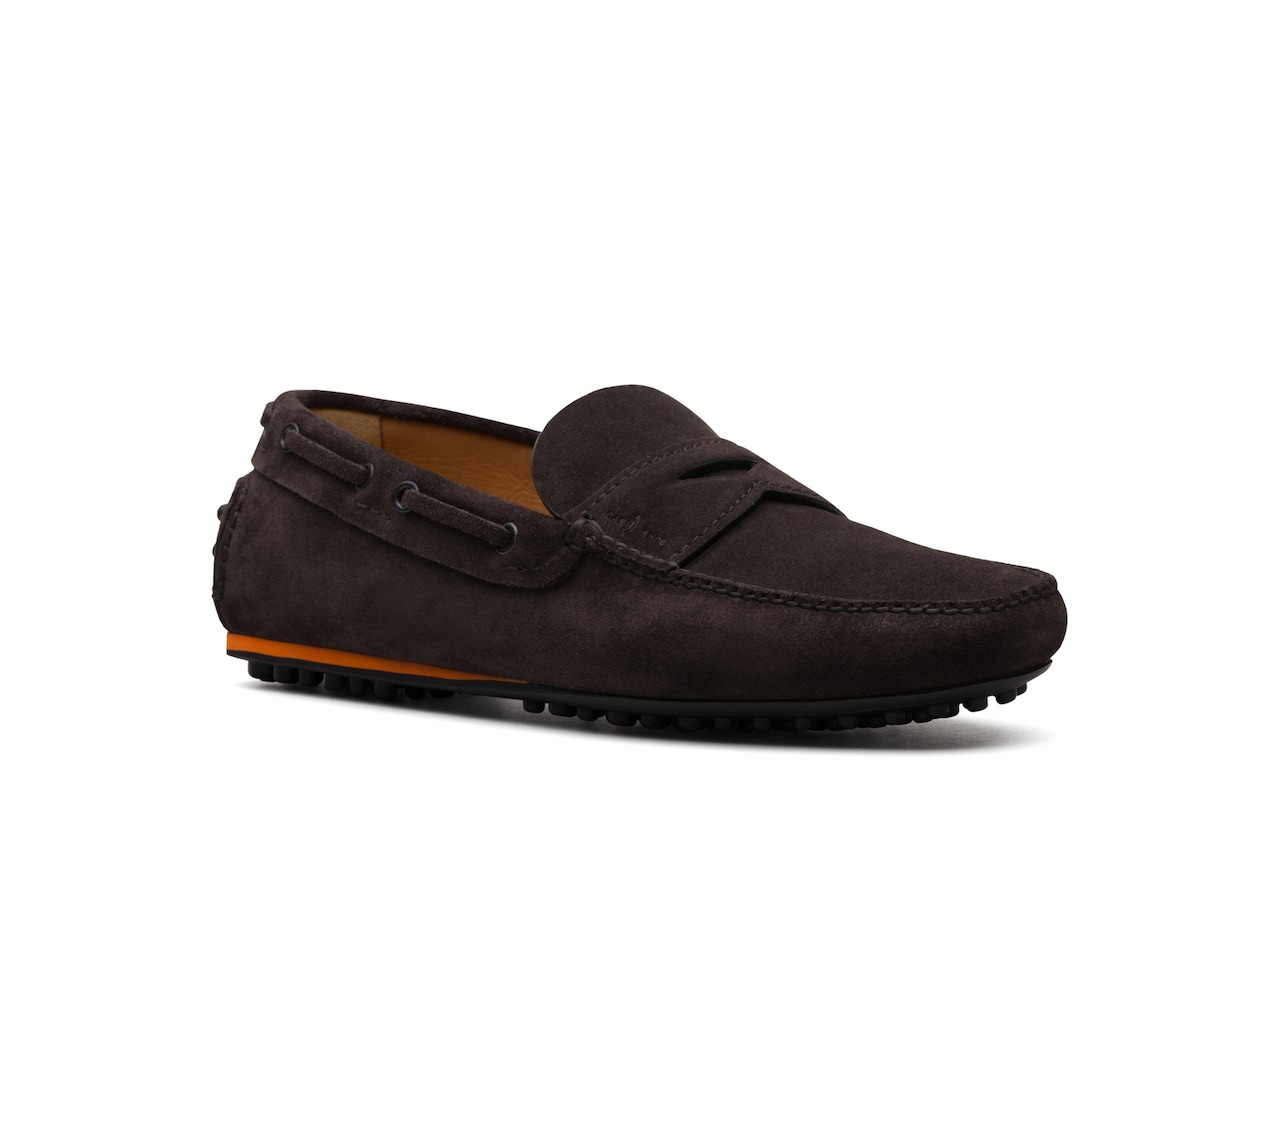 SUEDE DRIVING SHOES BROWN